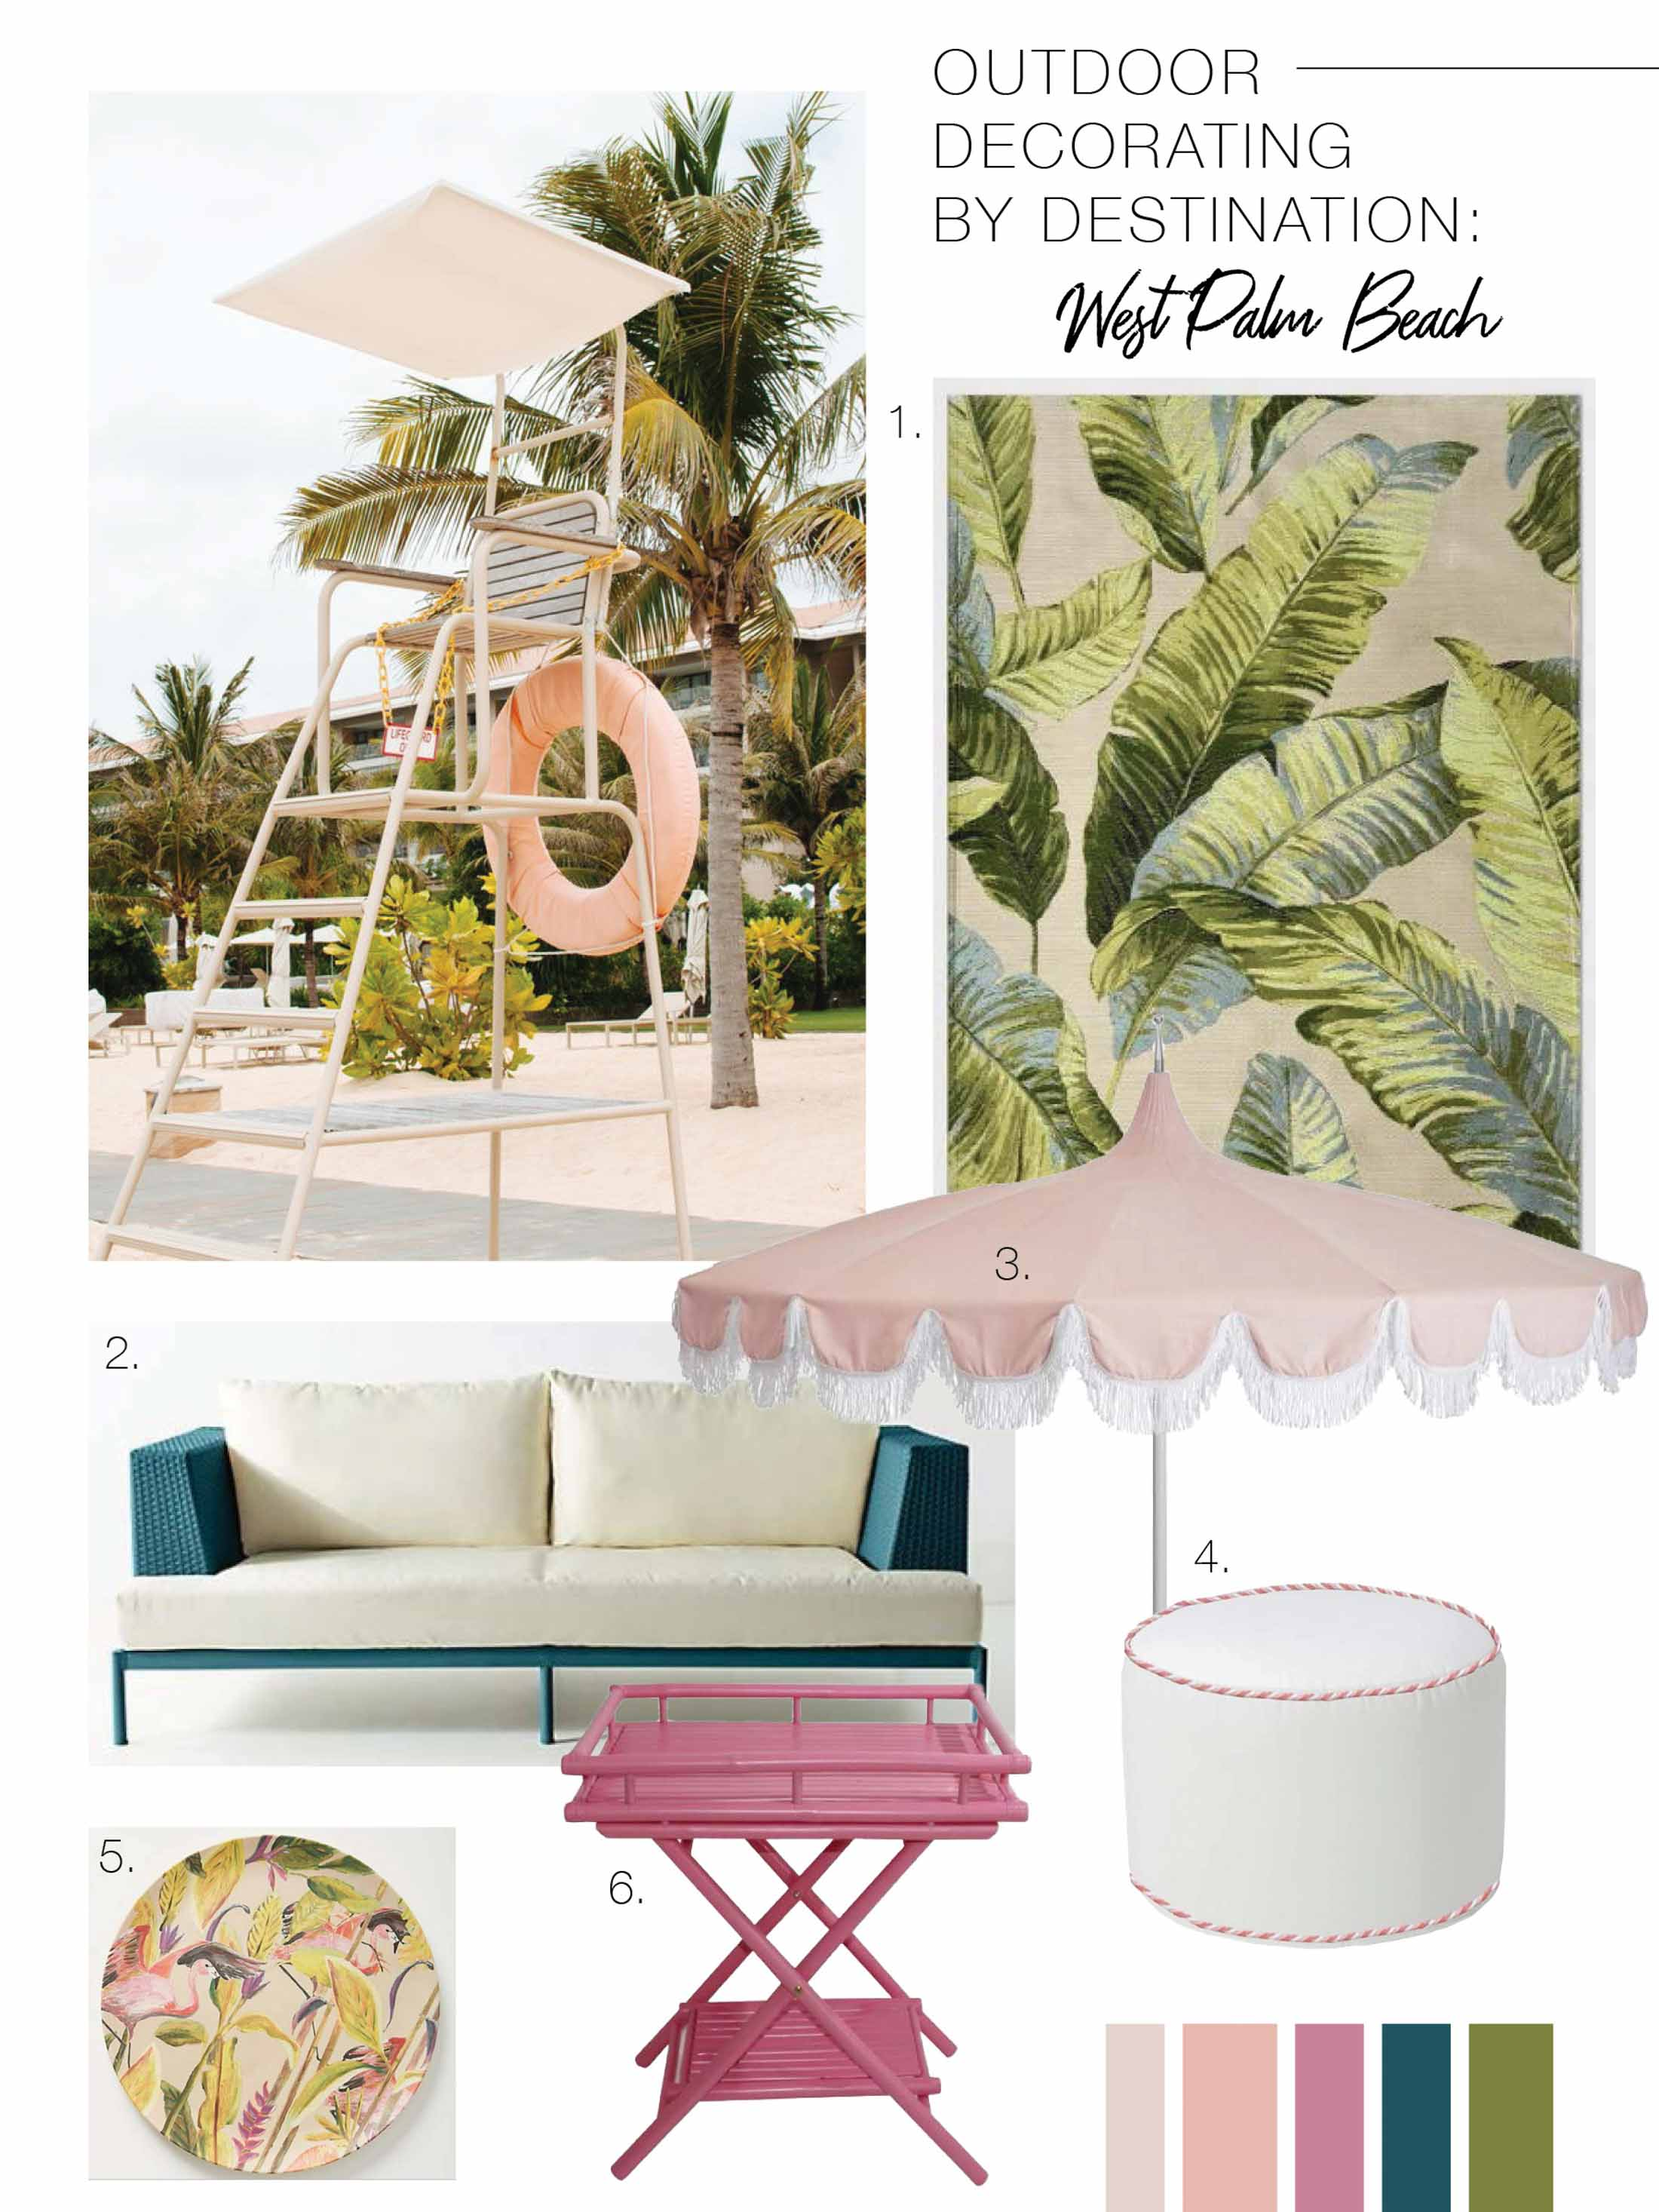 Found! The perfect backyard getaway: a vacation on your patio. These 6 destination-inspired outdoor decorating ideas are on fleek. Let's go.